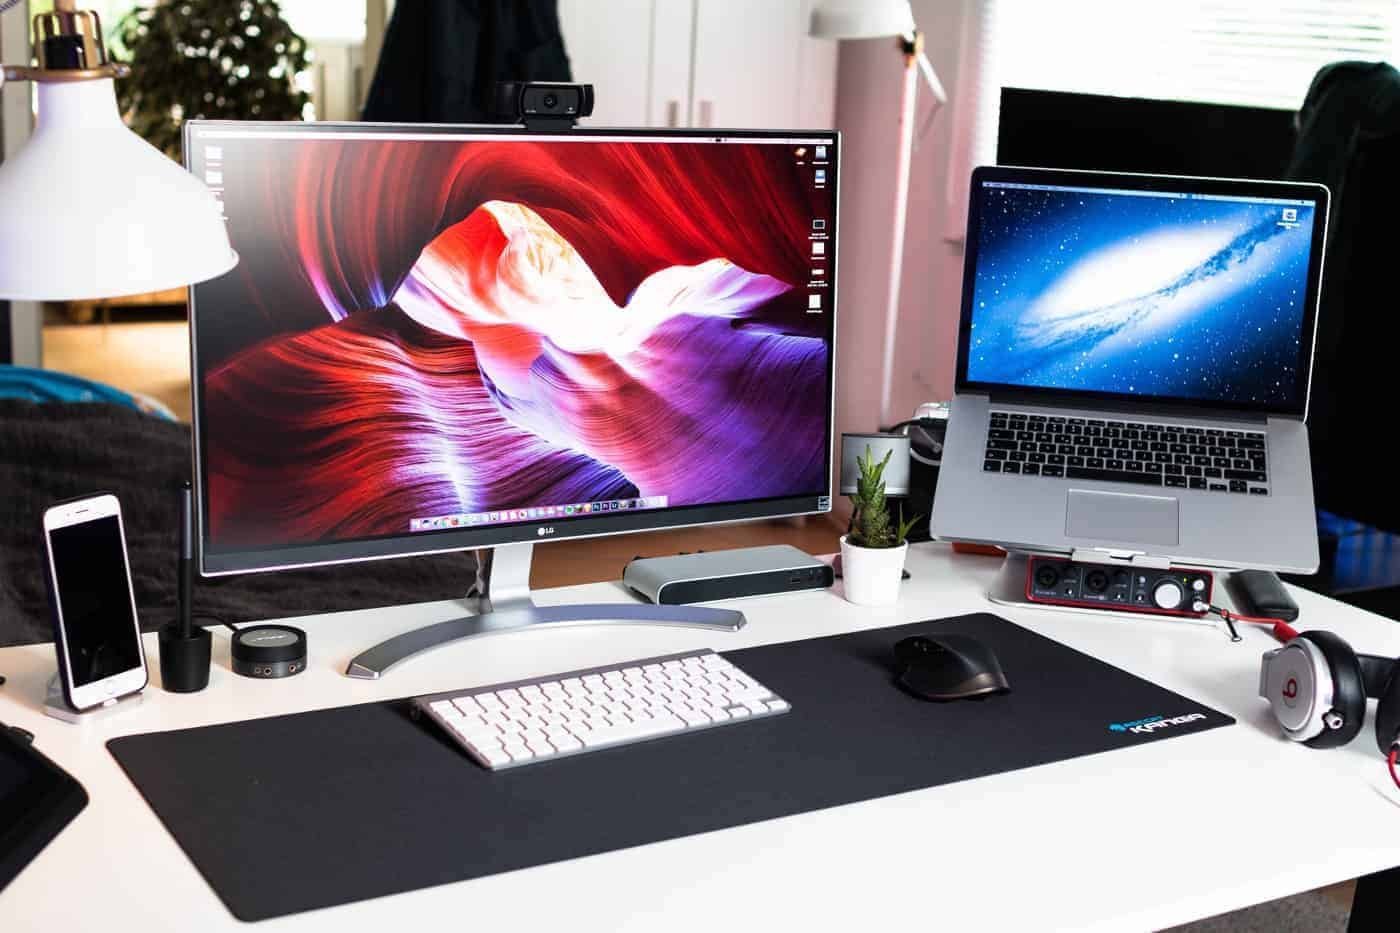 Best Monitors for Photo Editing (16 Picks for 2018)